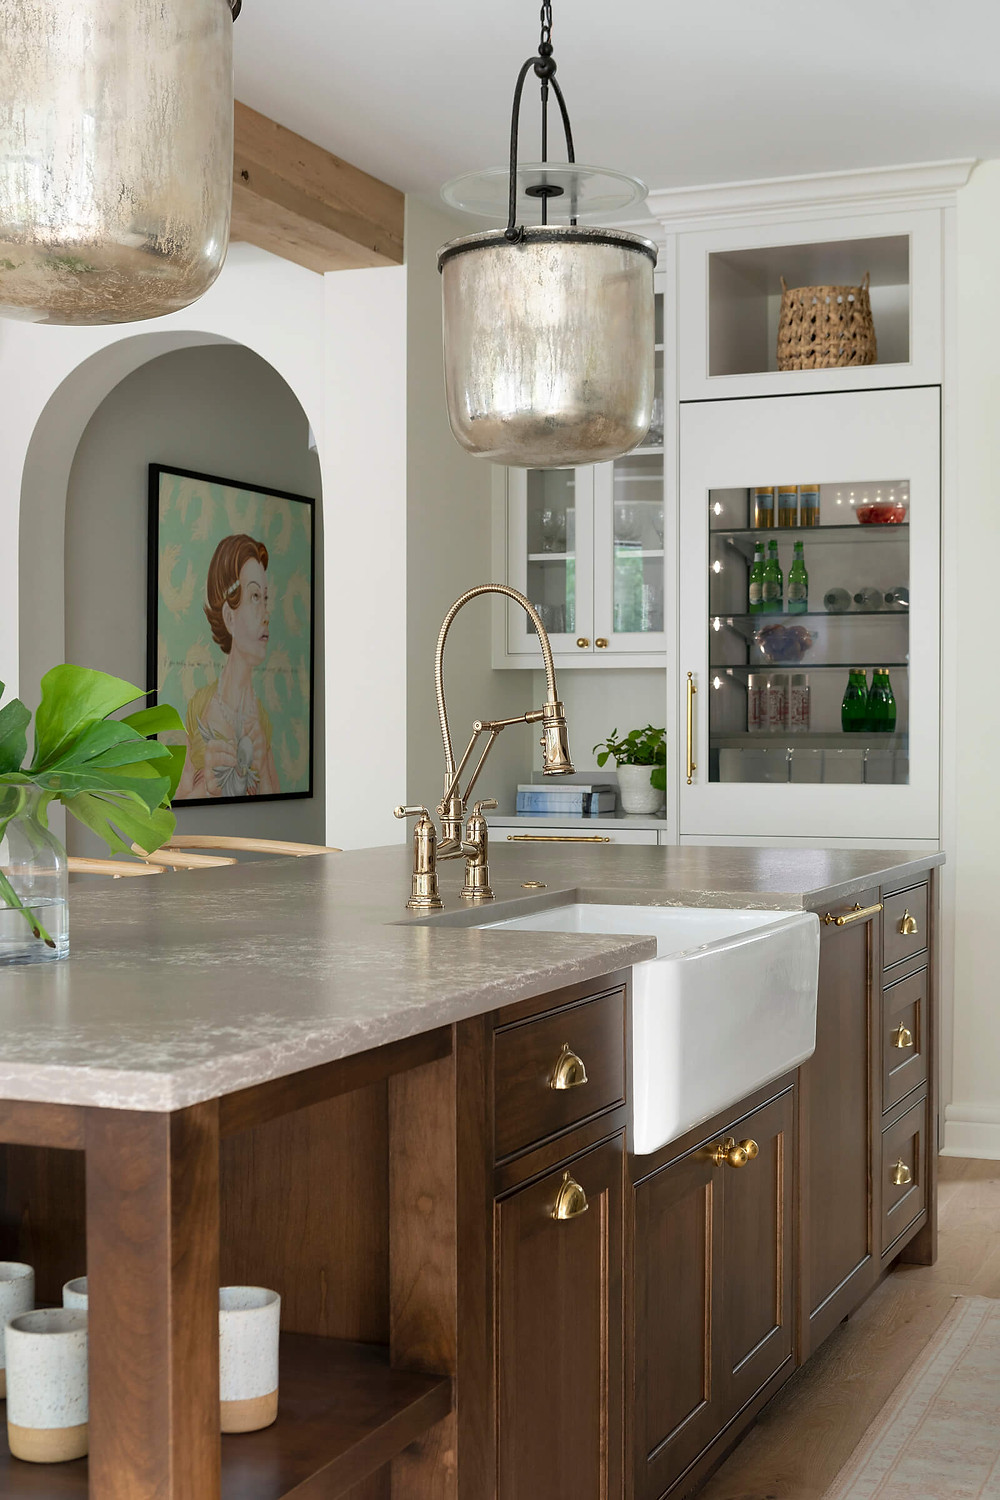 Modern traditional kitchen reveal, featuring warm wood tones, light pained cabinetry, unlacquered brass hardware and integrated appliances.